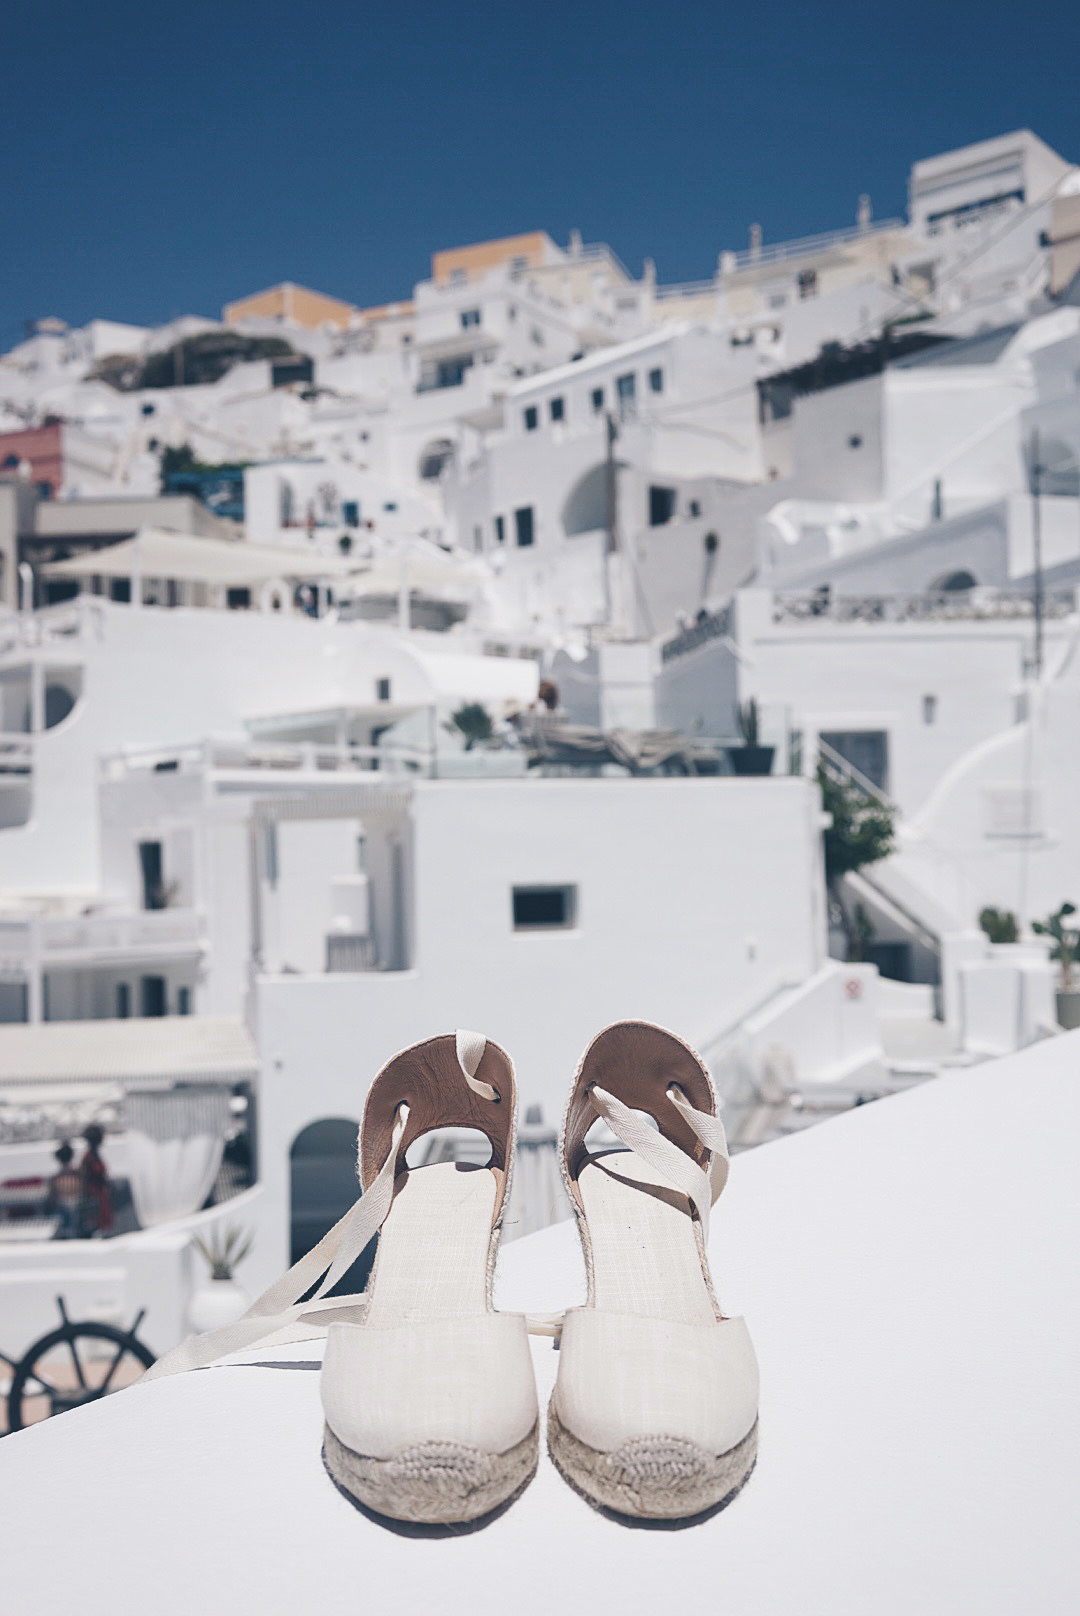 Blue_Dress-Soludos_Escapes-Soludos_Espadrilles-Canotier-Hat-Lack_Of_Color-Summer-Santorini-Collage_Vintage-110